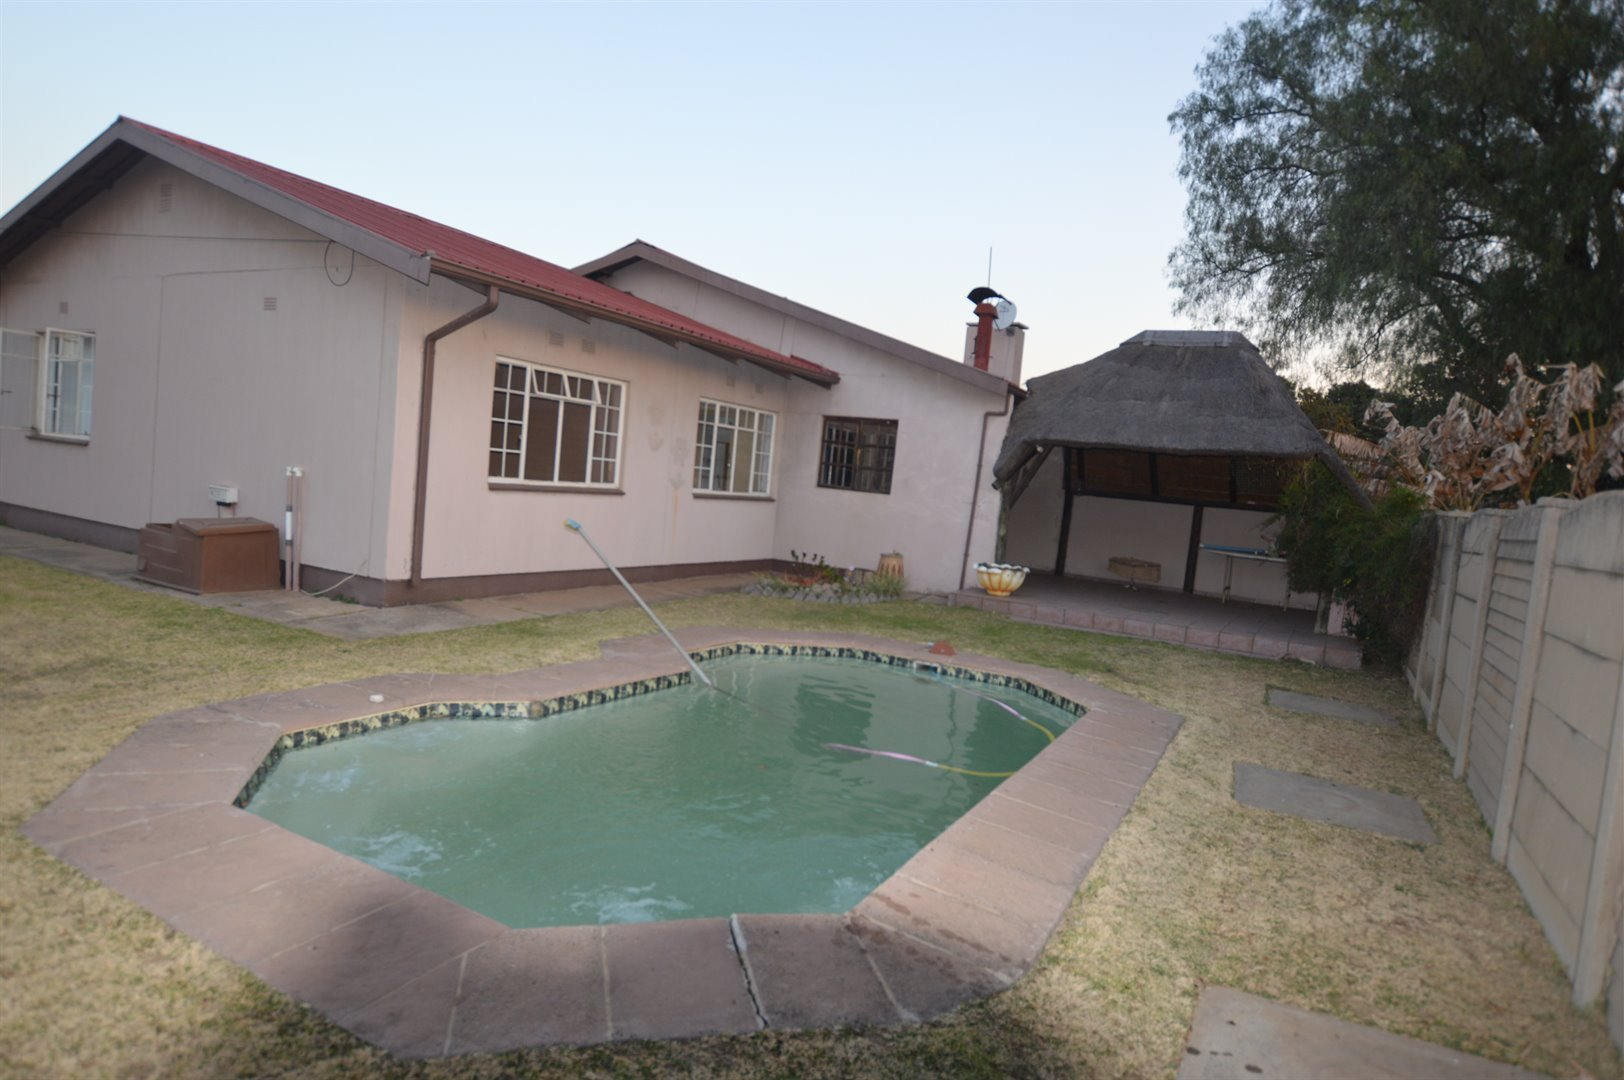 Vanderbijlpark, Vanderbijlpark Se1 Property  | Houses For Sale Vanderbijlpark Se1, Vanderbijlpark Se1, House 3 bedrooms property for sale Price:830,000